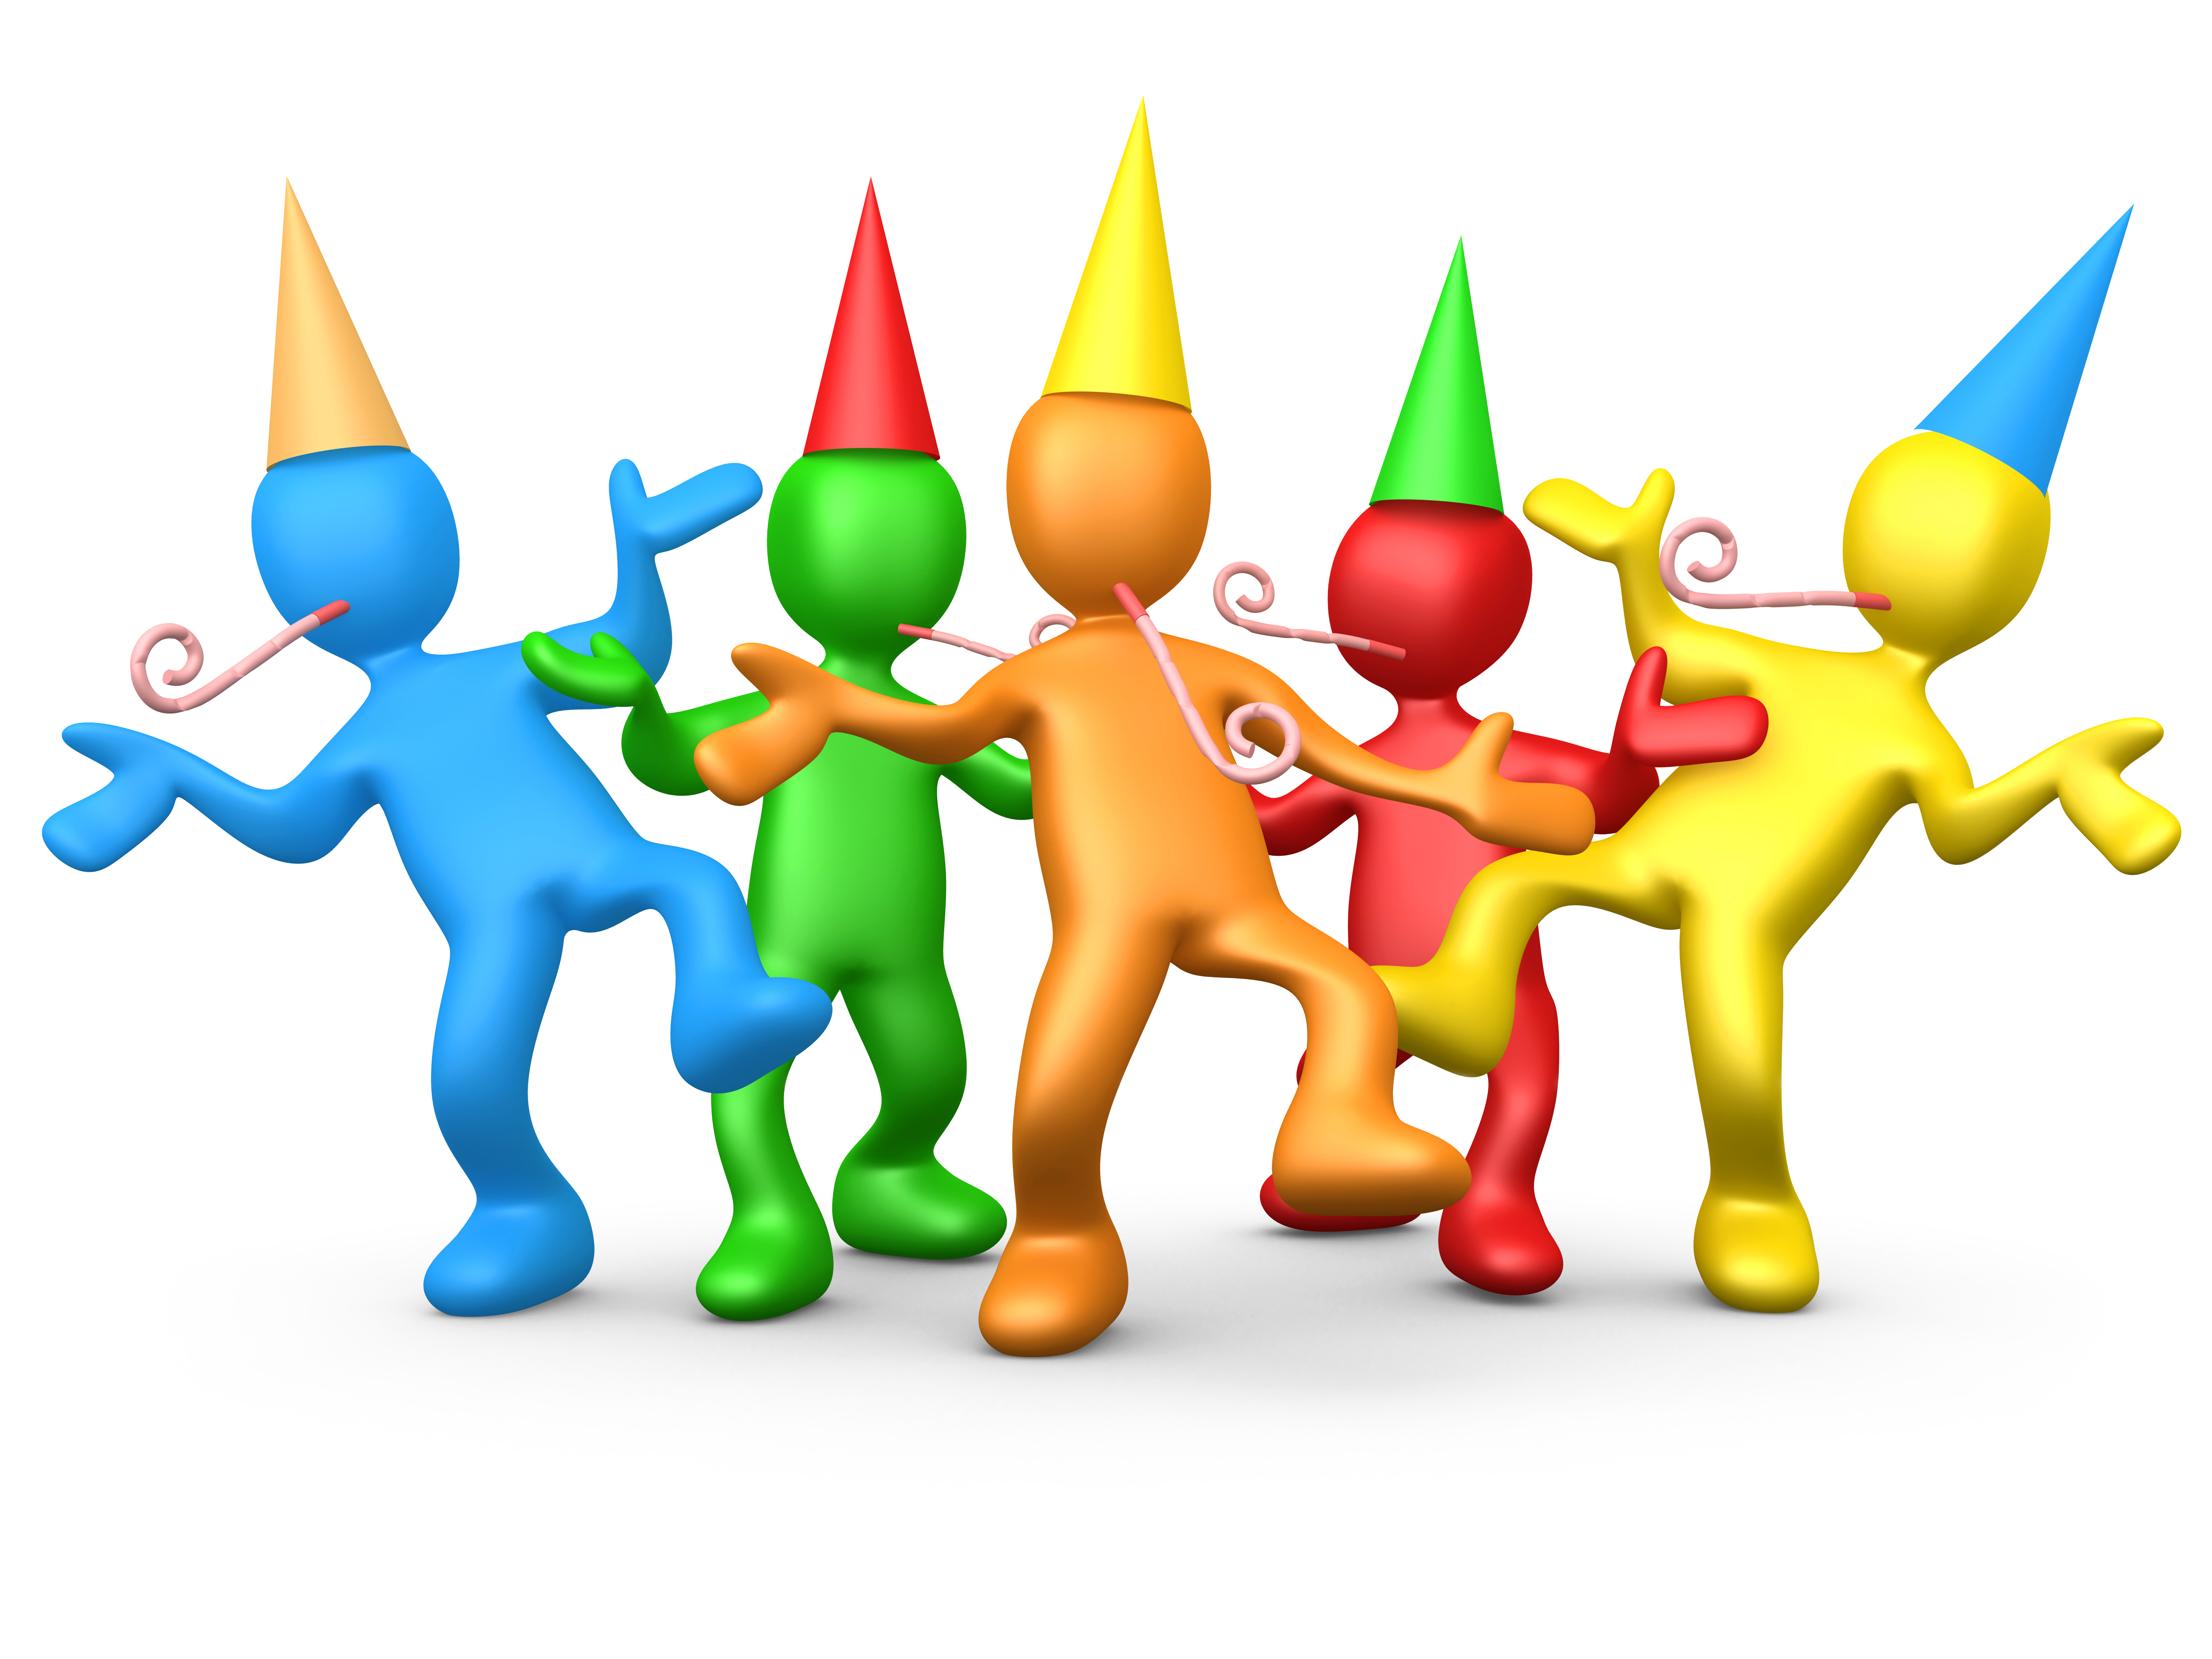 Celebration clipart smiley face Face smiley dancing Images Info